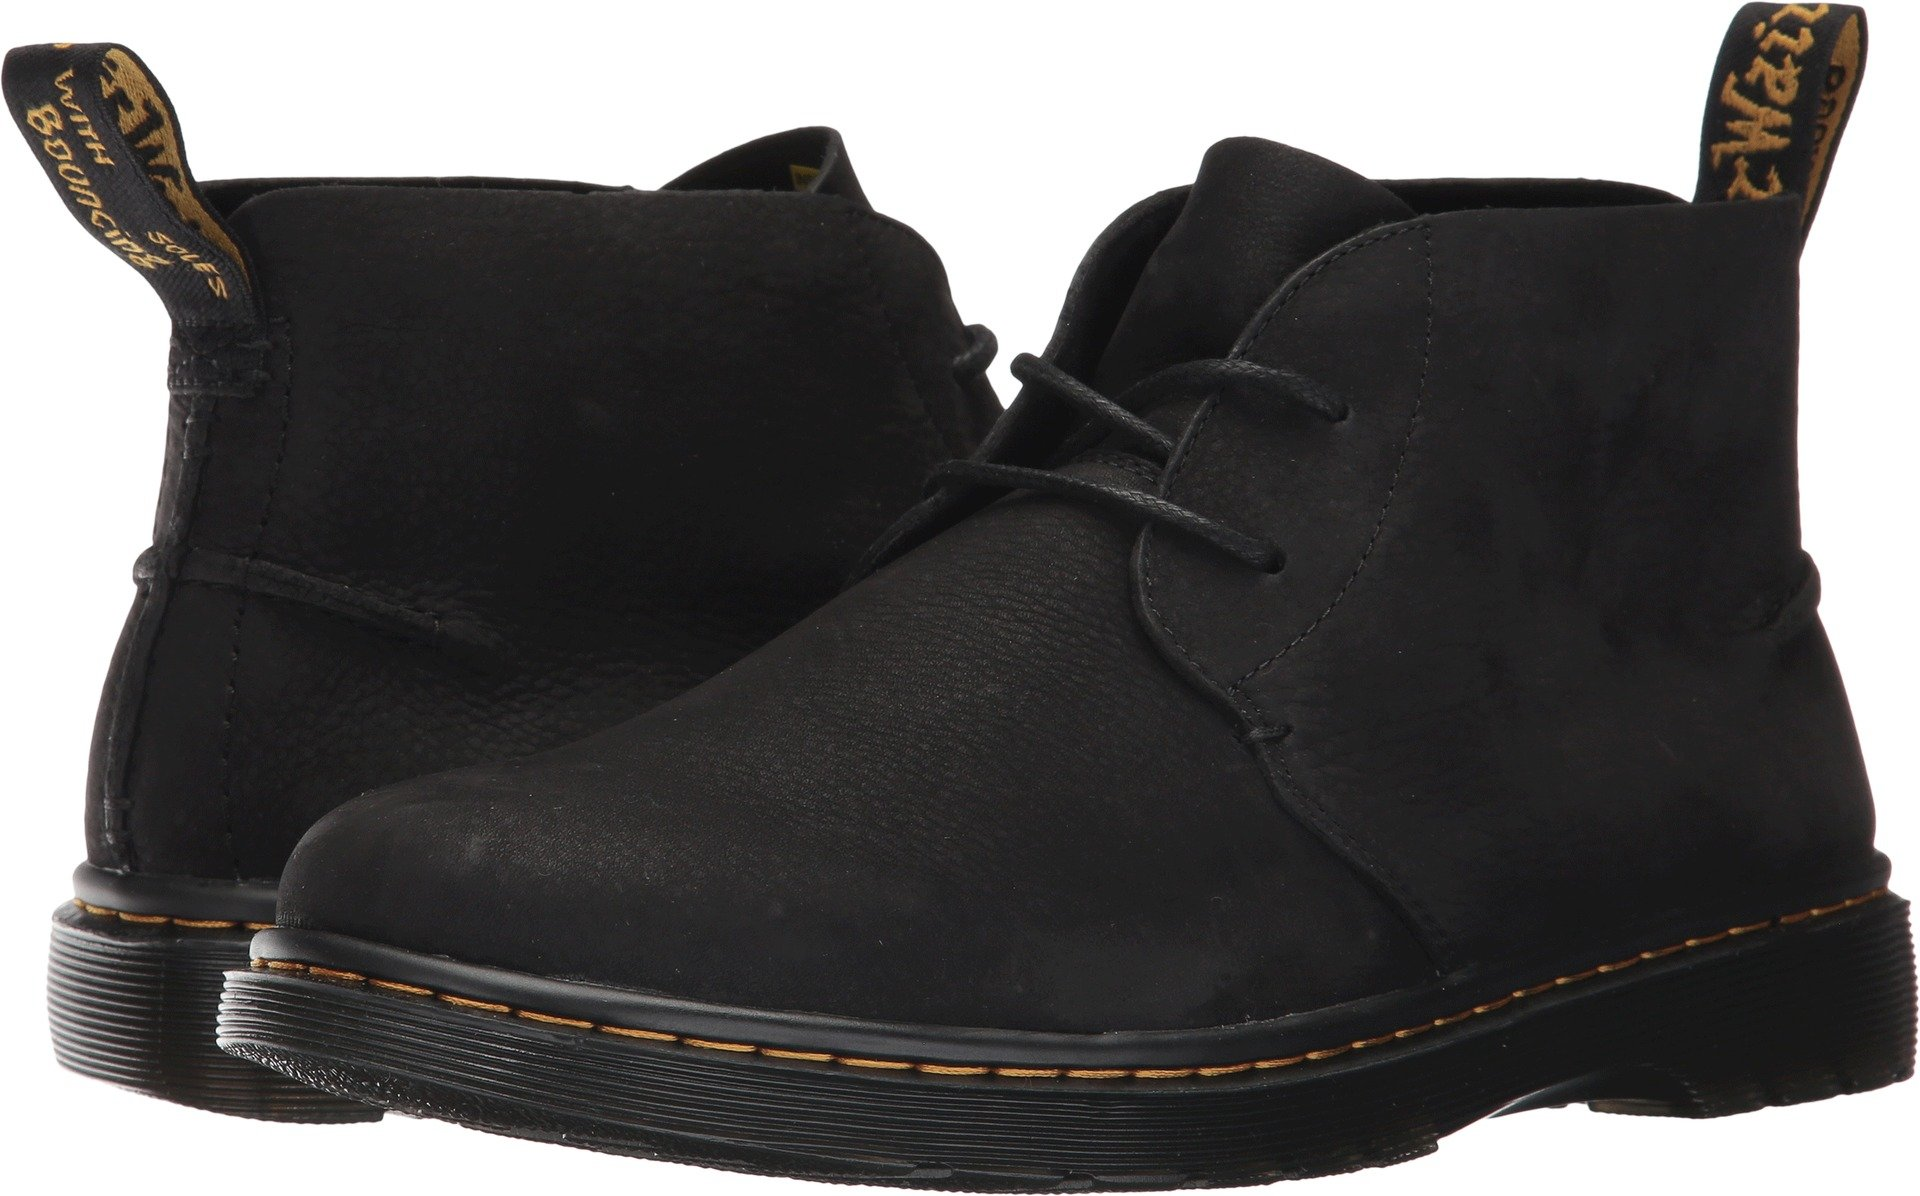 Dr. Martens Men's Ember Chelsea Boot, Black Slippery Wp, 7 Medium UK (8 US) by Dr. Martens